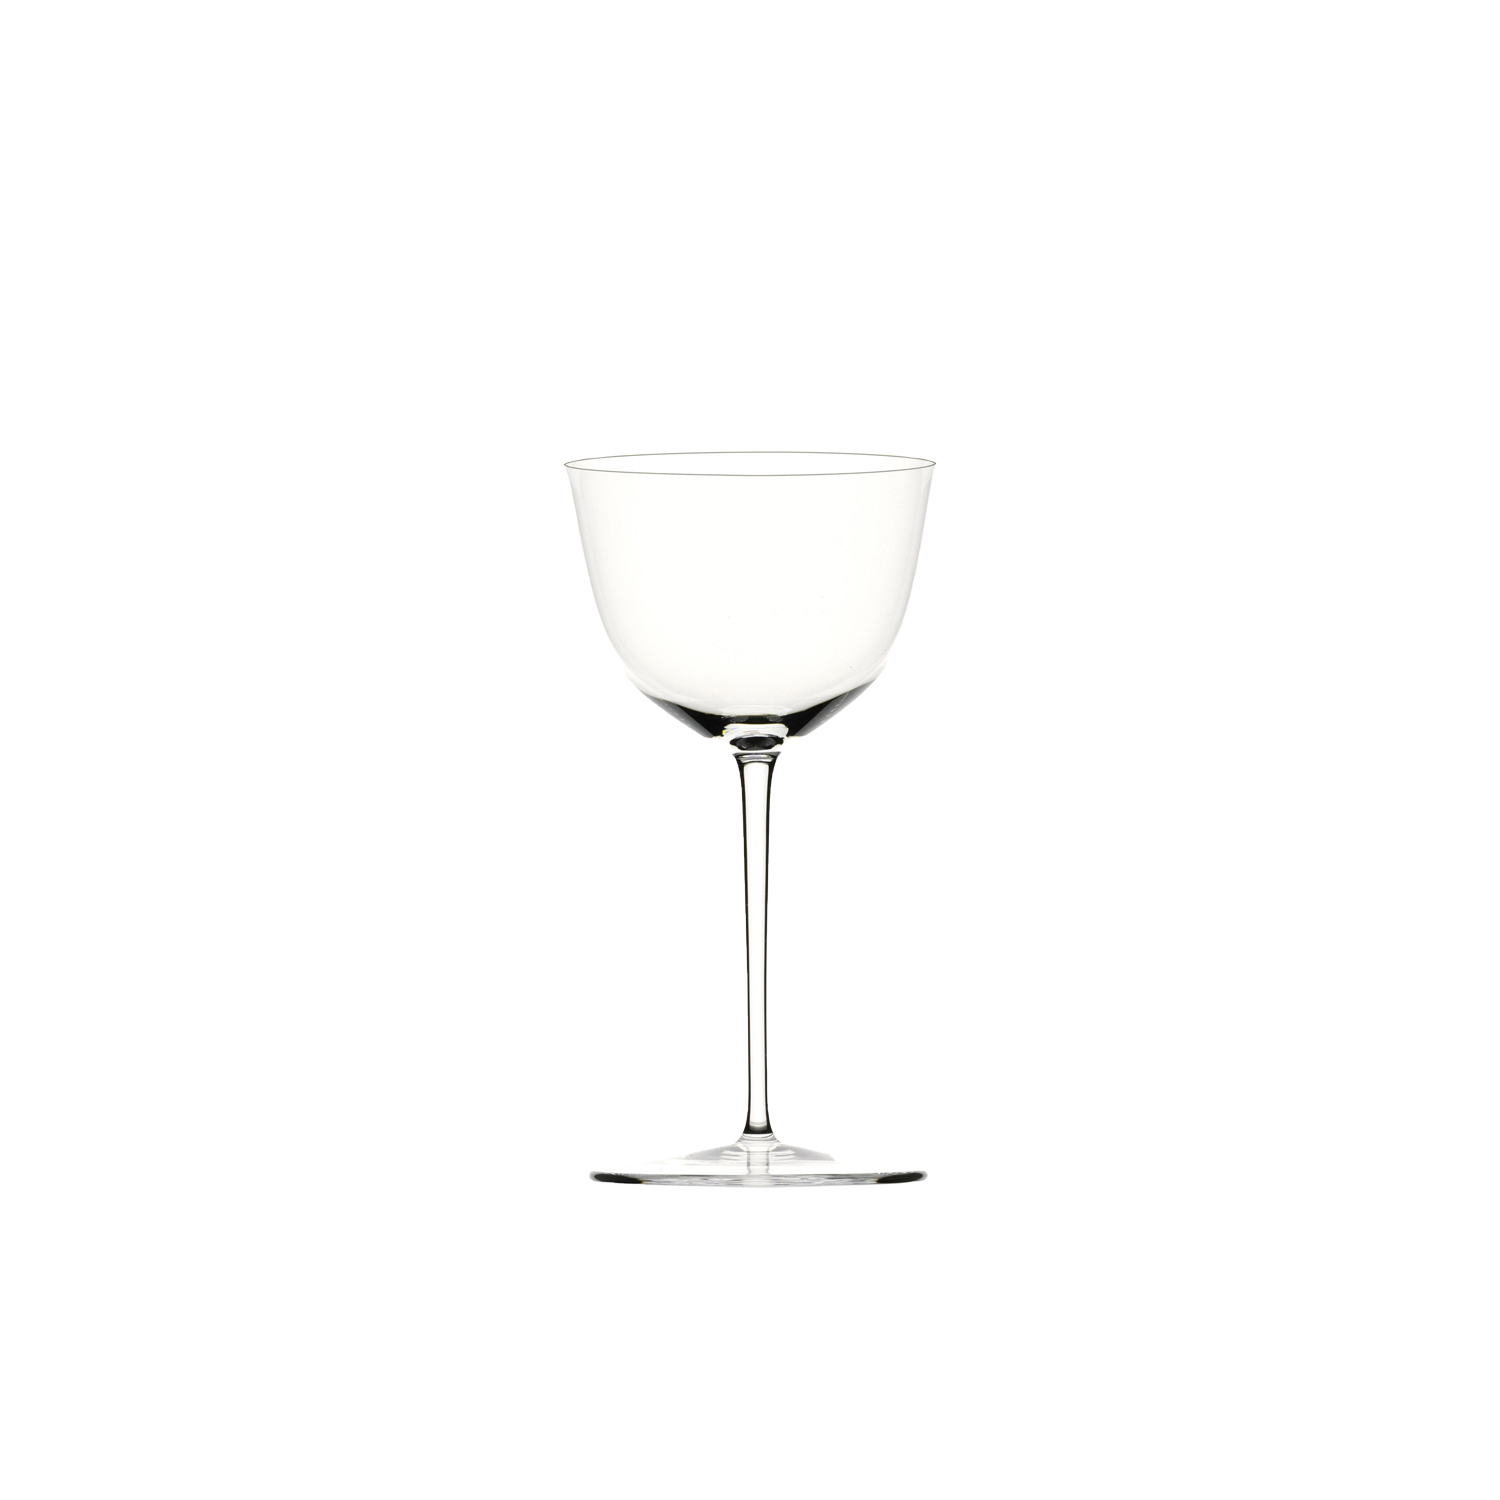 Drinking Set No.238 Wine Glass III - Set of 6 - The perfectly flowing contours of these original Hoffmann shapes make this muslin glass service a classic. Josef Hoffmann designed the elegantly balanced glasses for Lobmeyr as early as 1917. The material, extremely delicate muslin glass, hand-blown in wooden shapes, gives the series its elegance. | Matter of Stuff